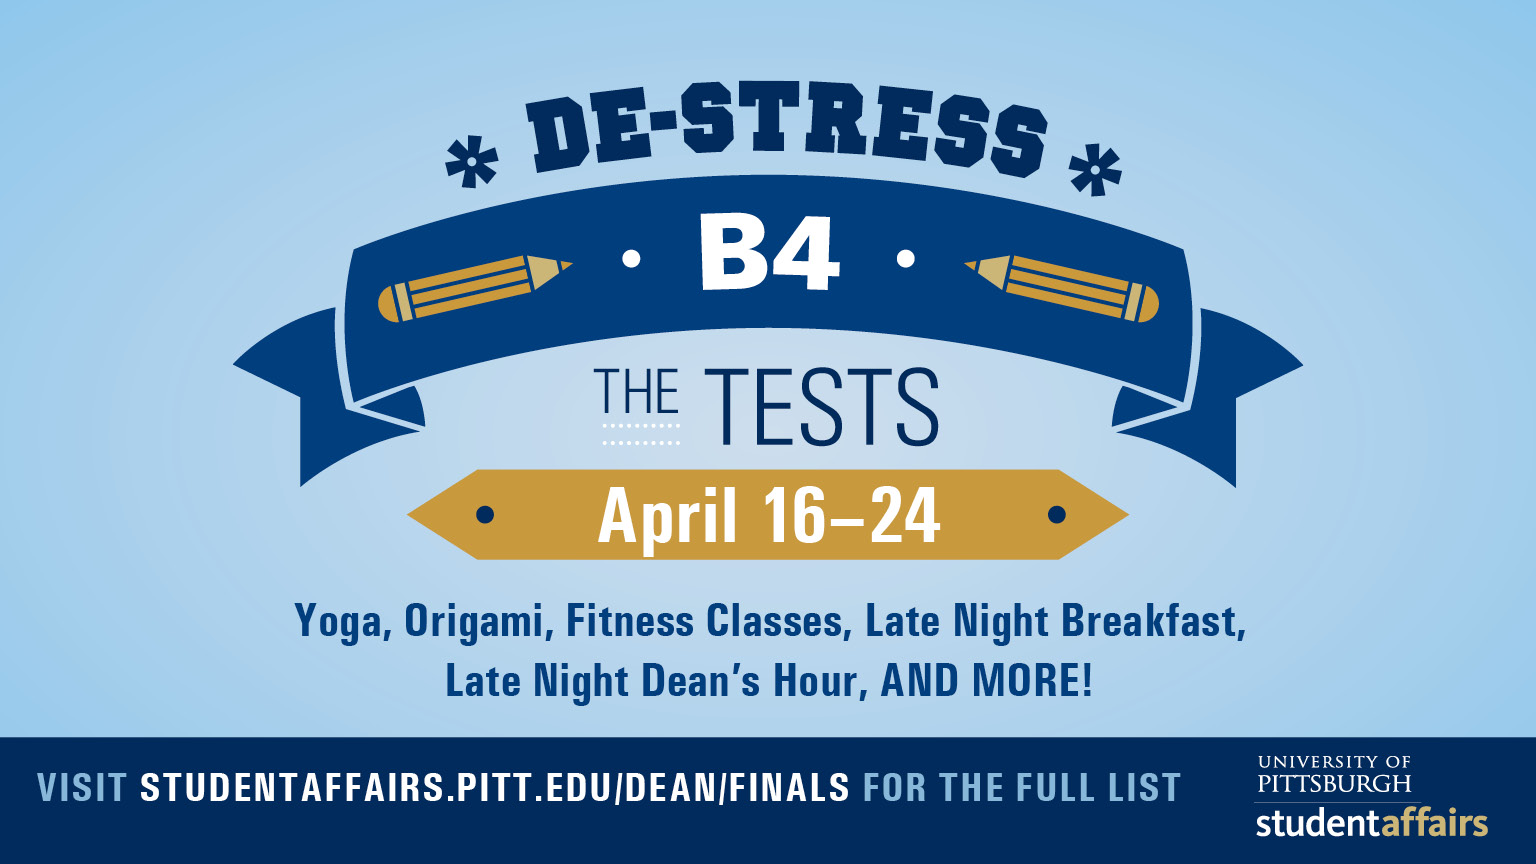 DeStress_tvslides_ April 24